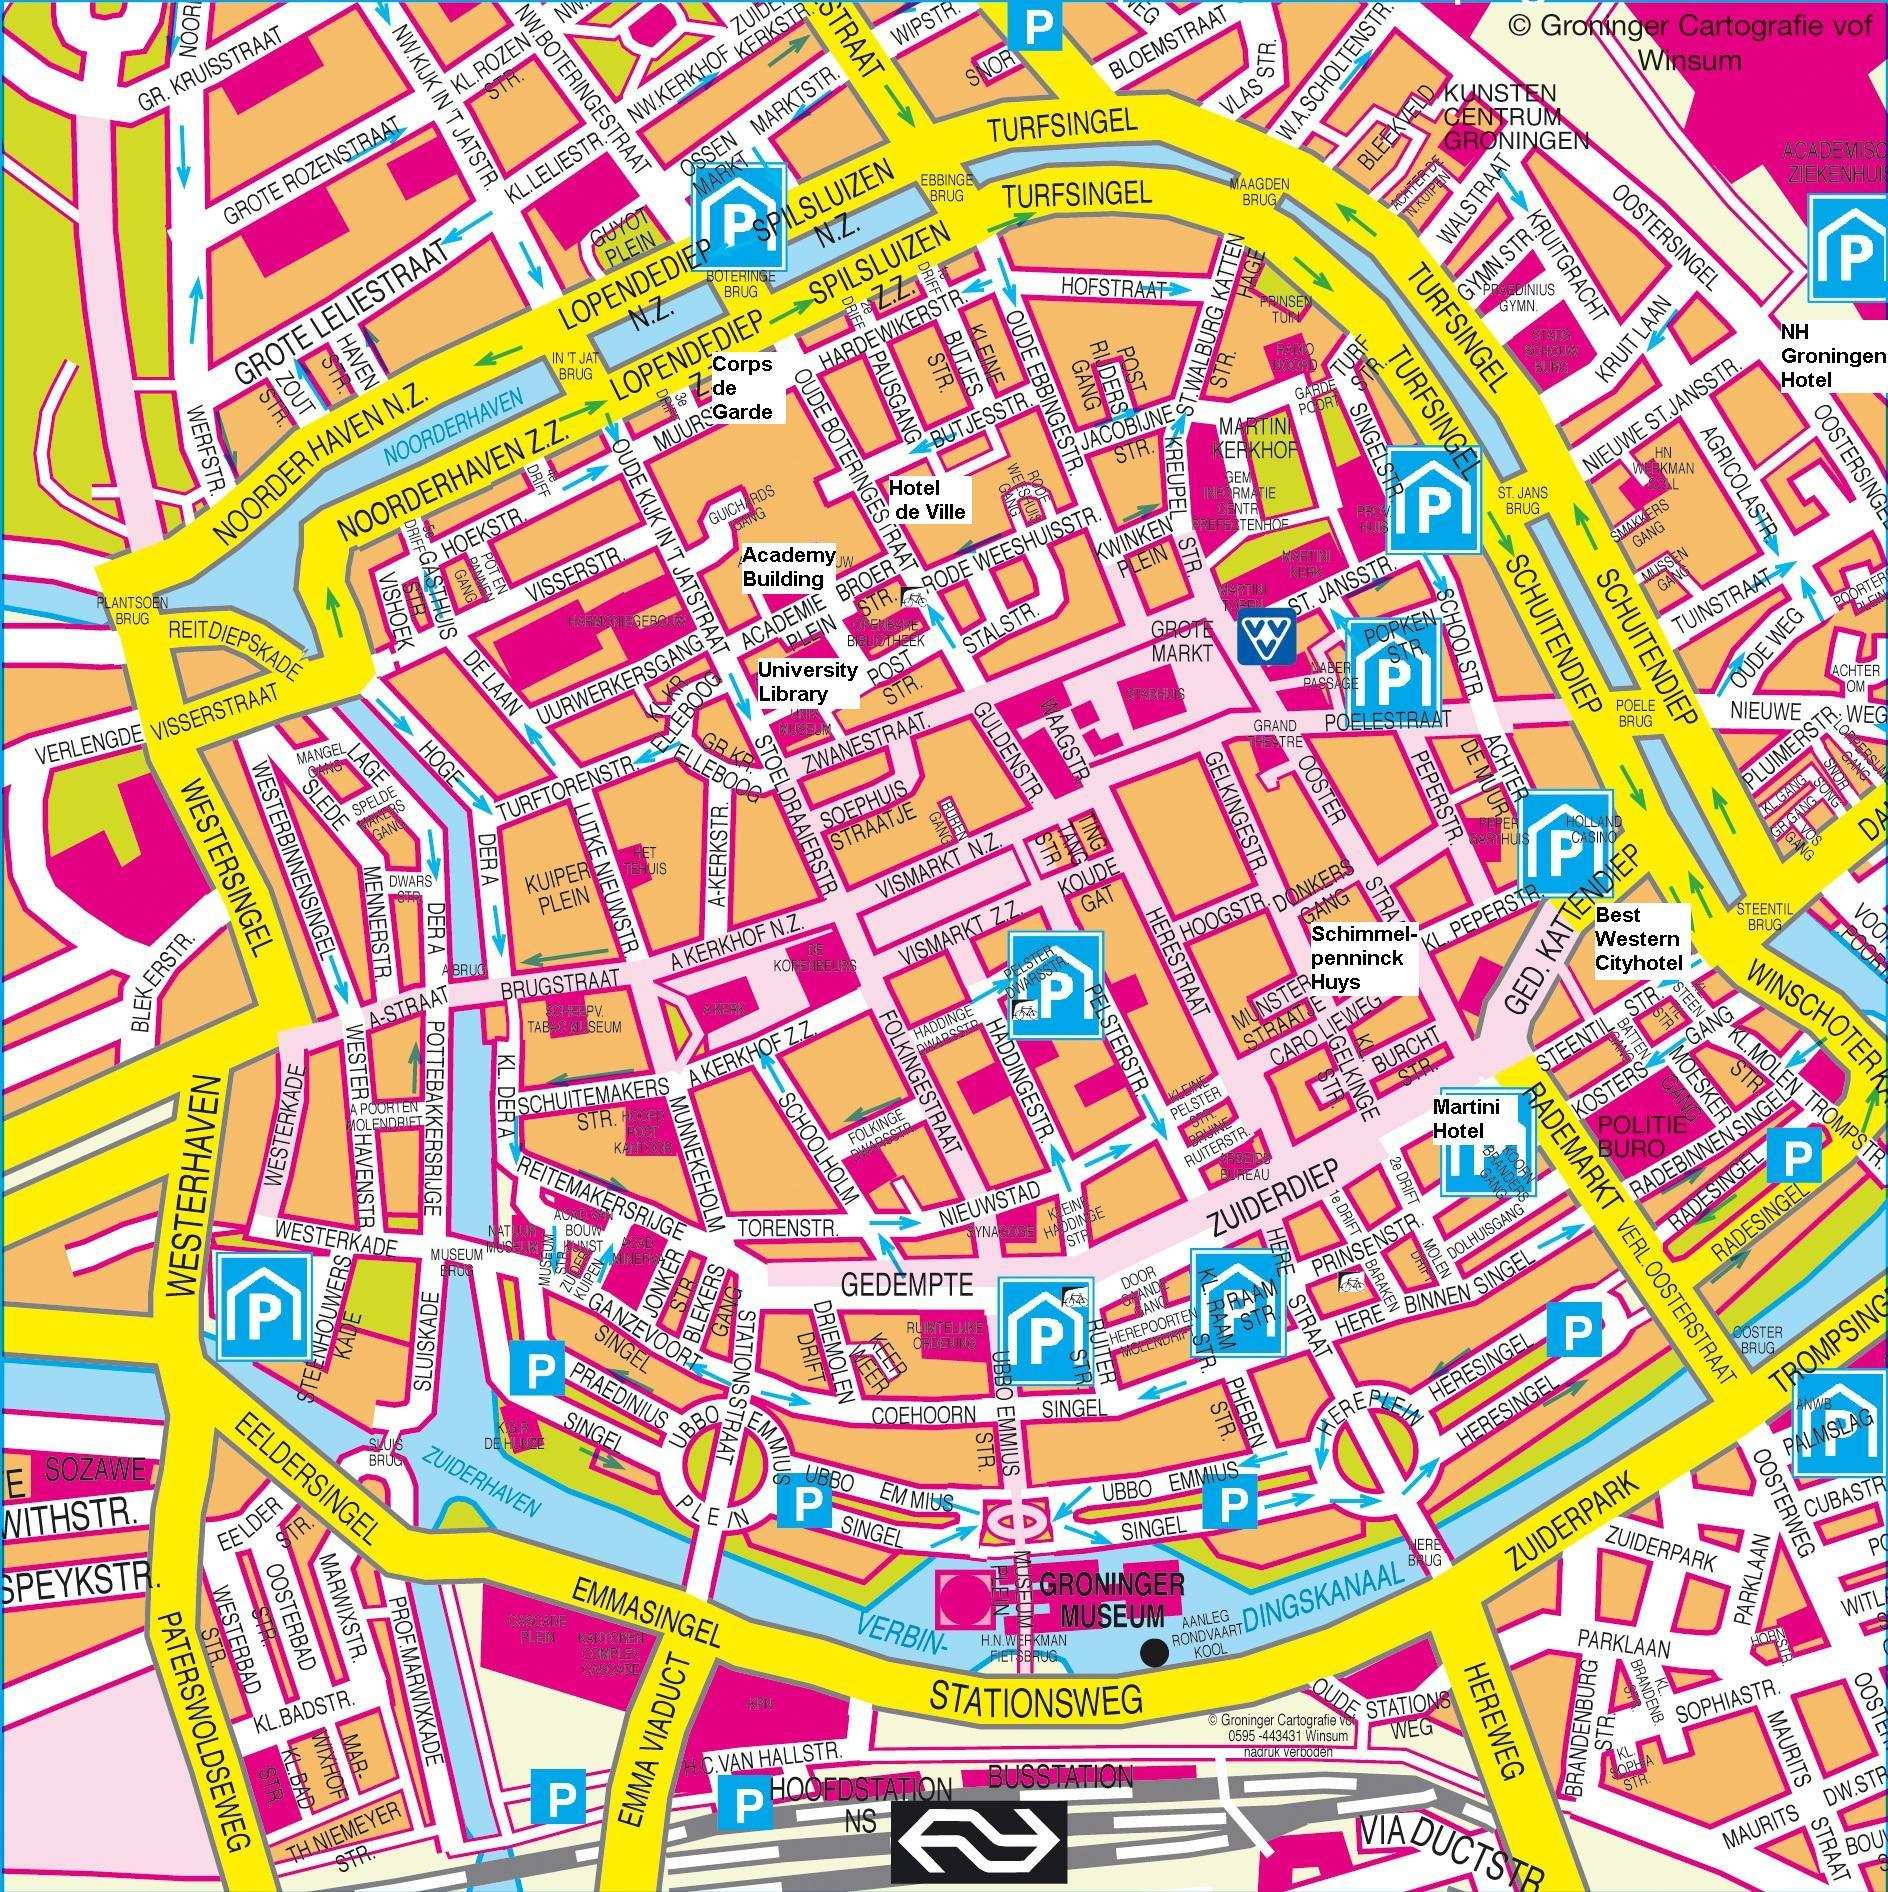 Venlo Stadtplan Large Groningen Maps For Free Download And Print | High